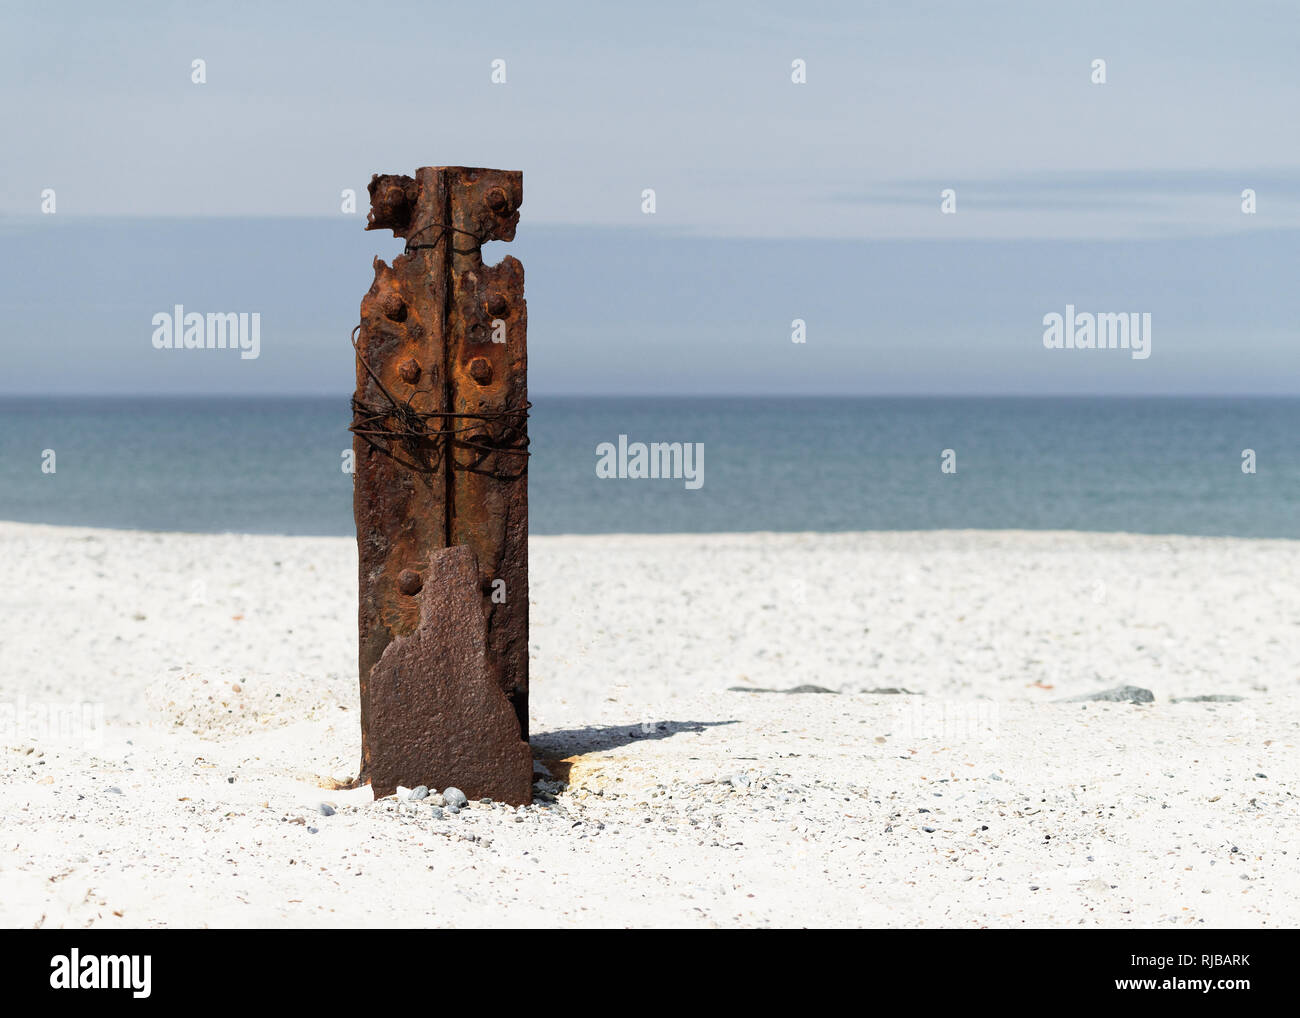 Rusty iron part as a remnant of buildings from the Second World War in the focus area on a bright sandy beach, behind blue sky and the sea - close-up, - Stock Image